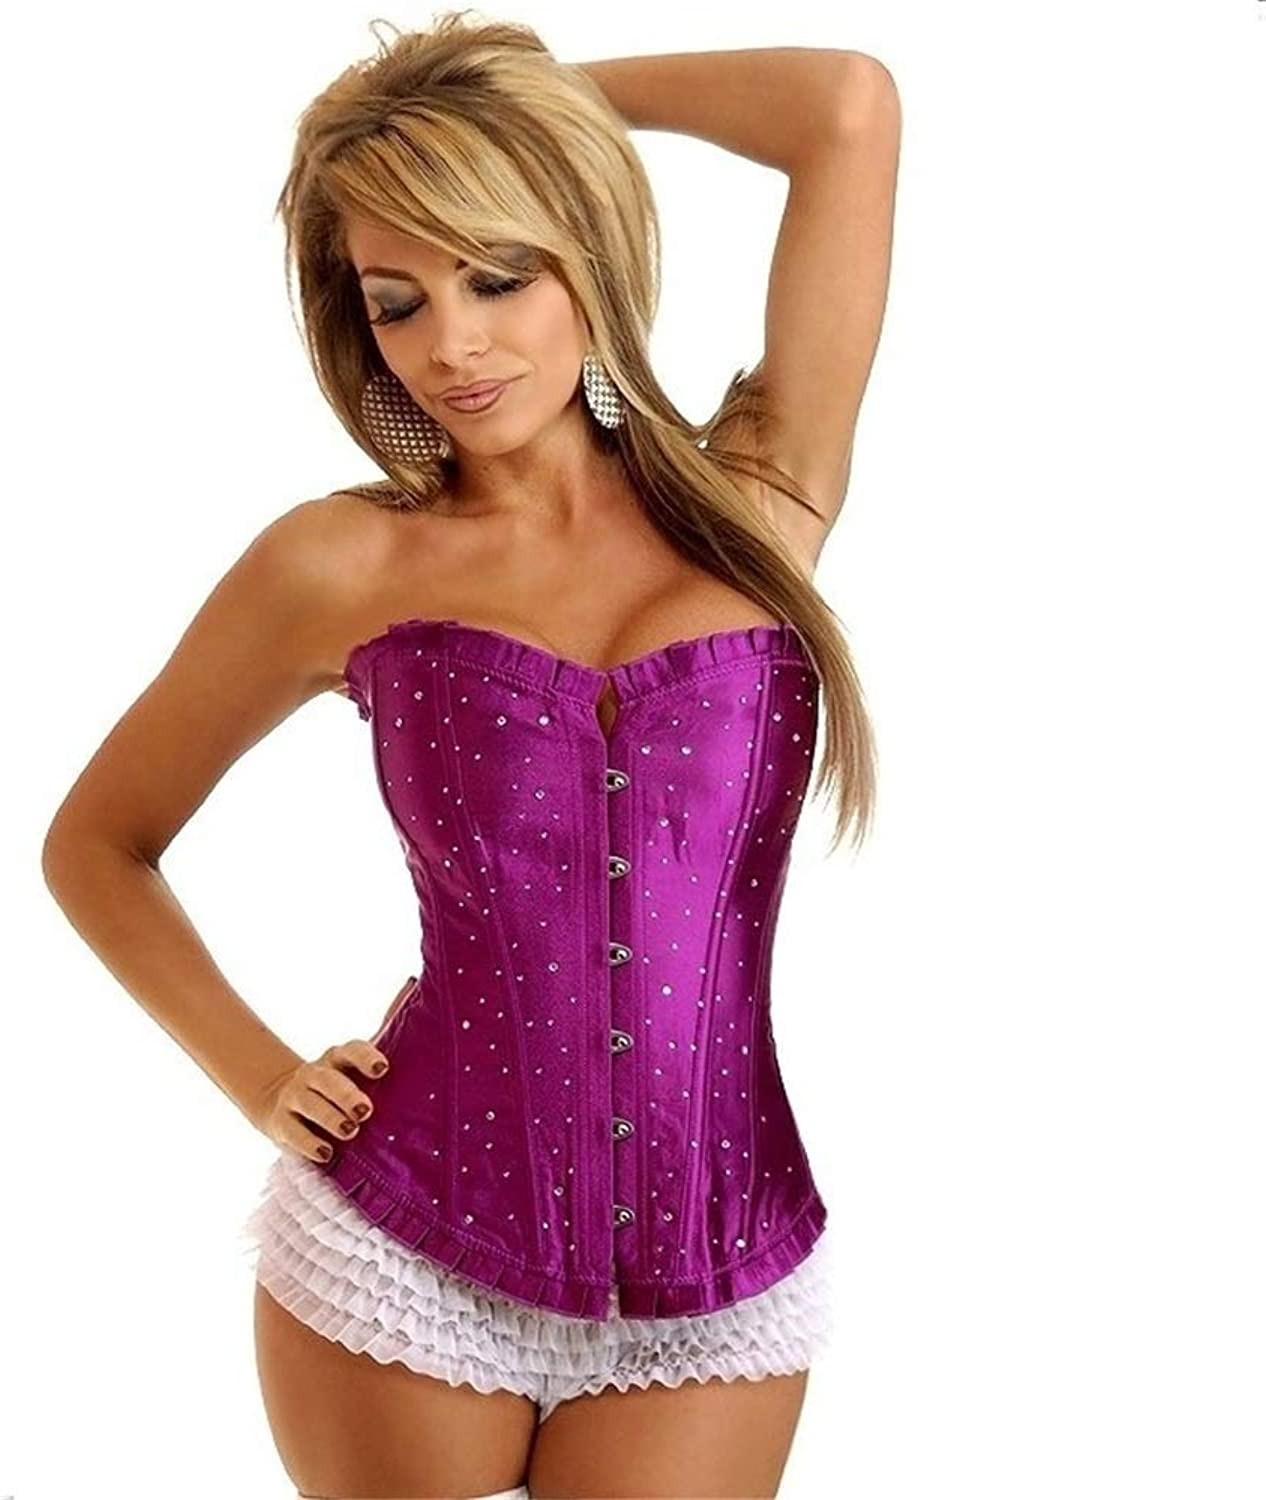 Corset Women's Floral Lace Slim Bodice Strapless Ruffled Brocade Thong and Corset (color   Purple, Size   M)